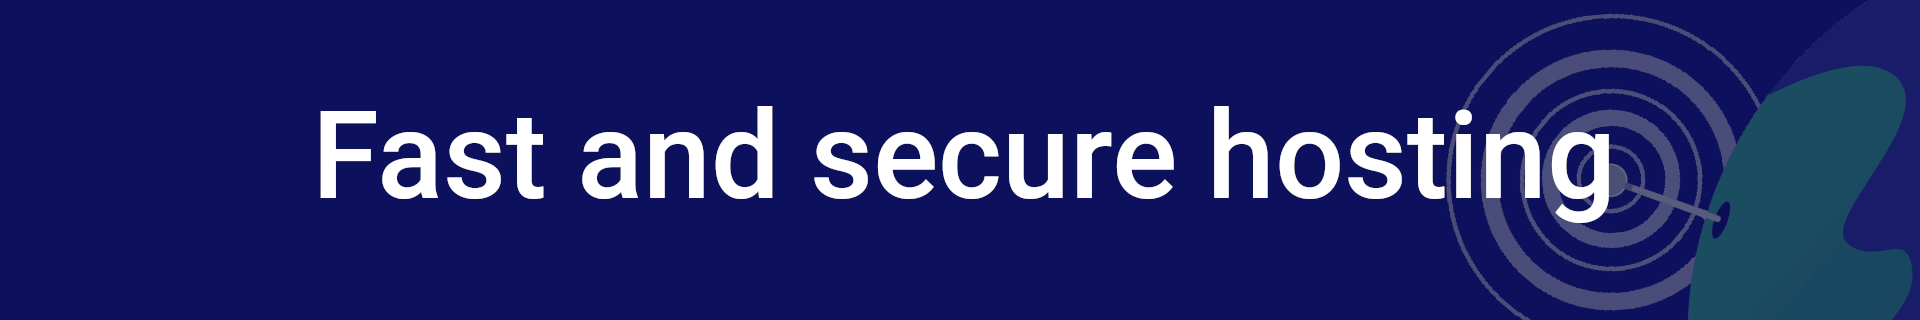 Fast and secure hosting